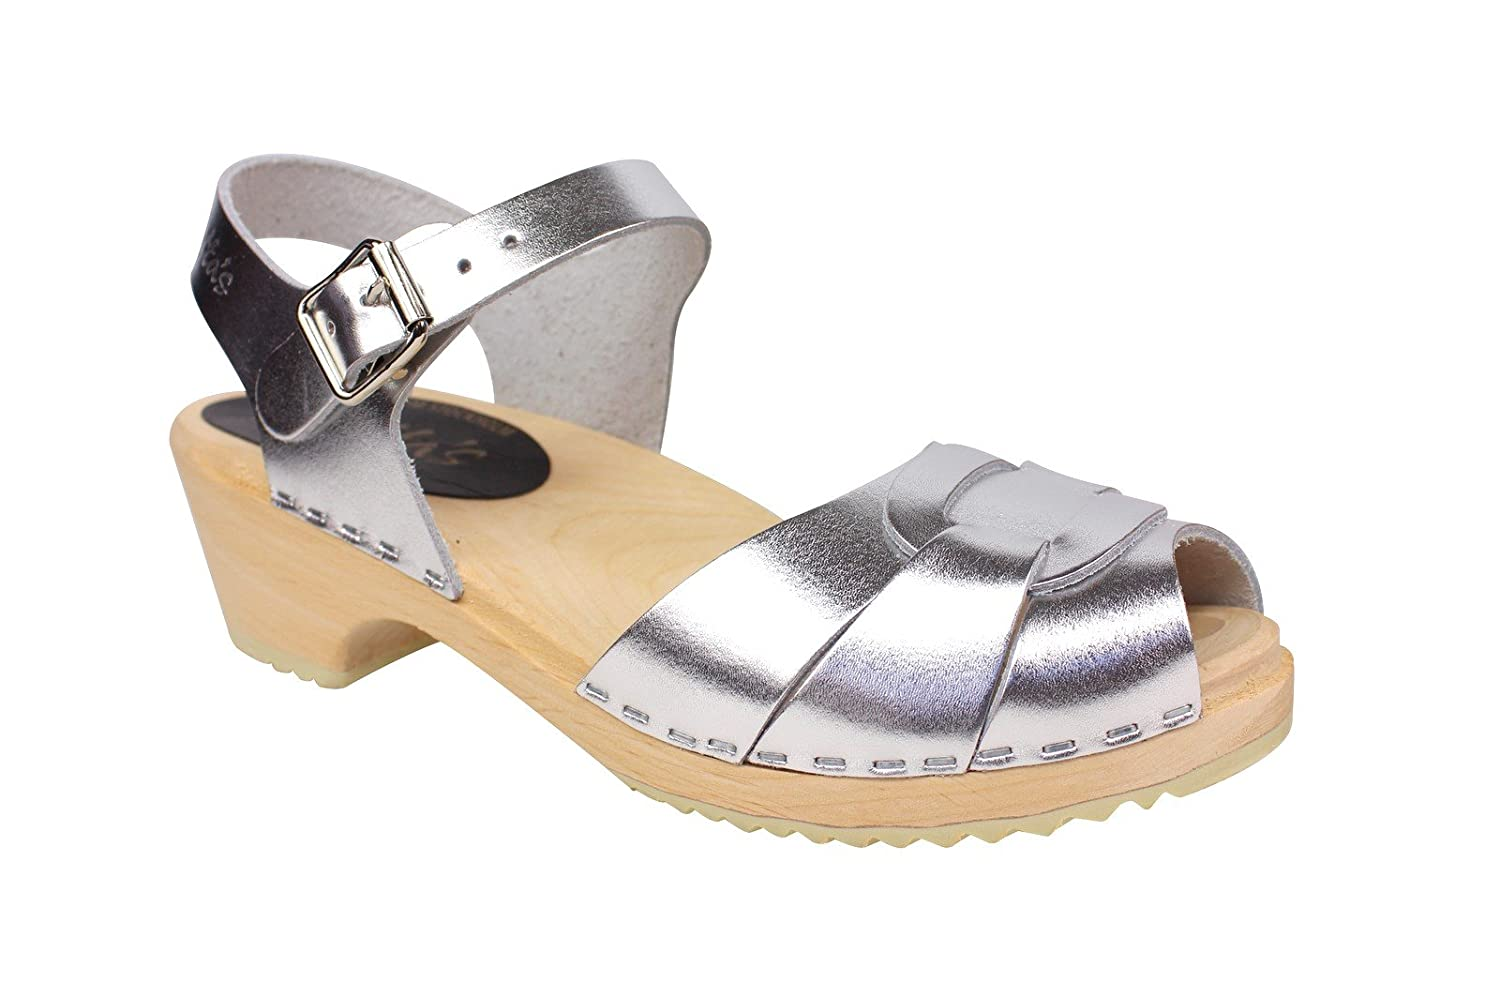 Lotta From Stockholm Low Peep Toe Clogs in Silver